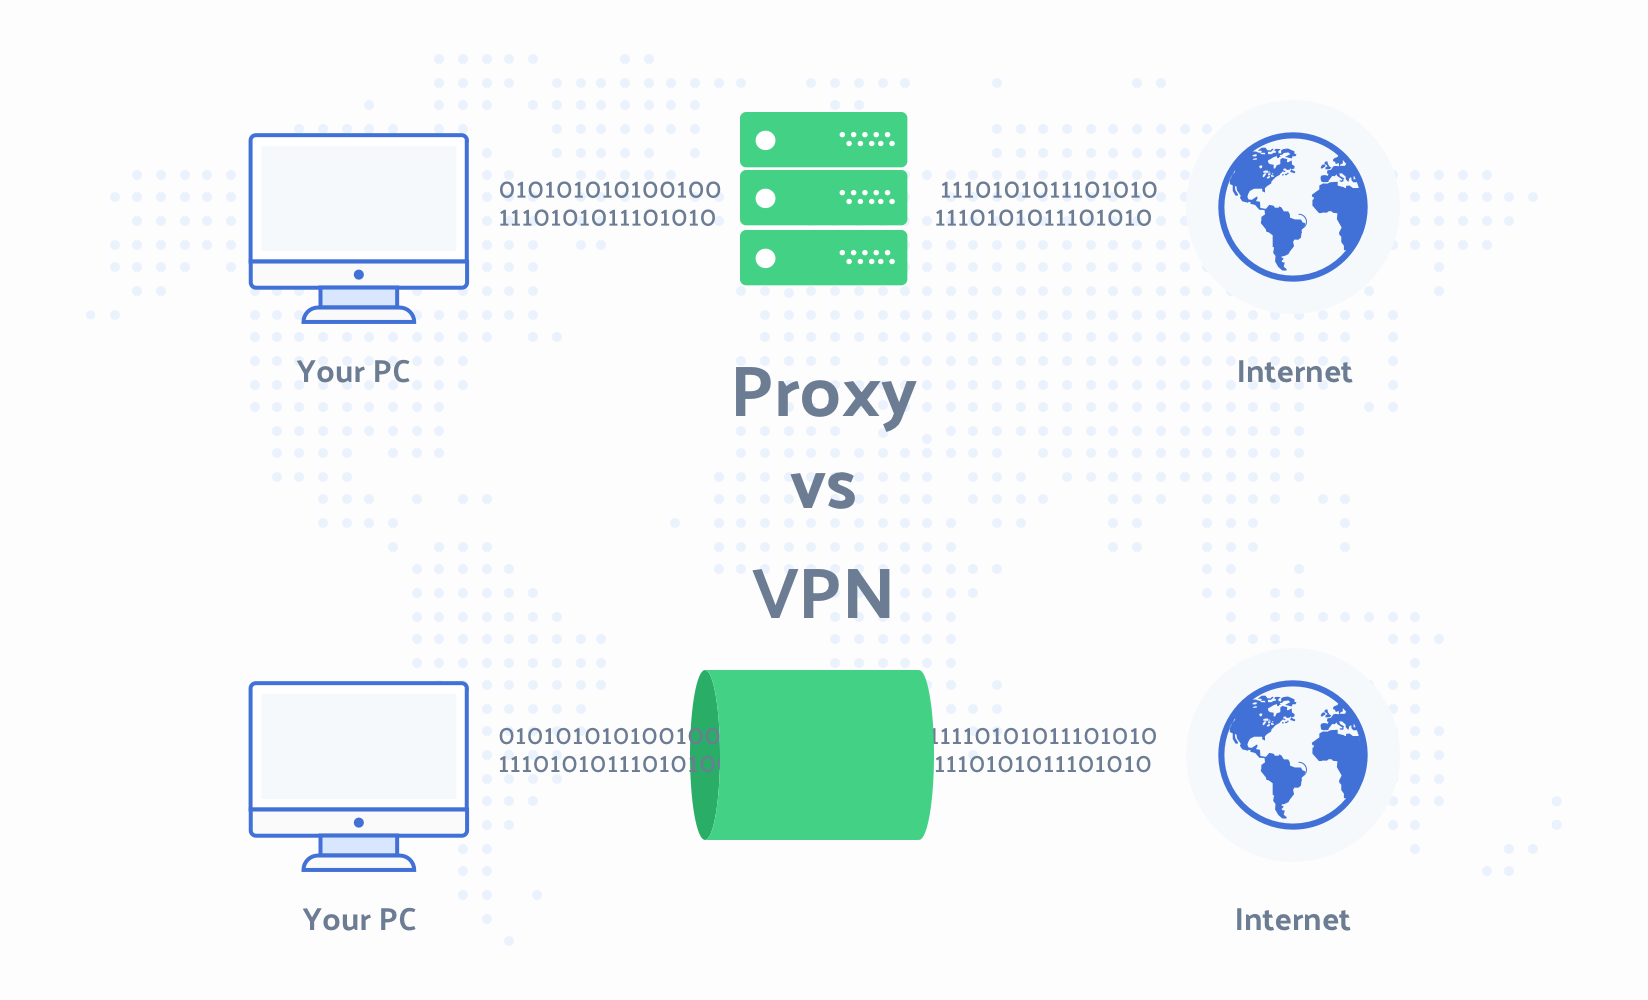 VPN and Proxy